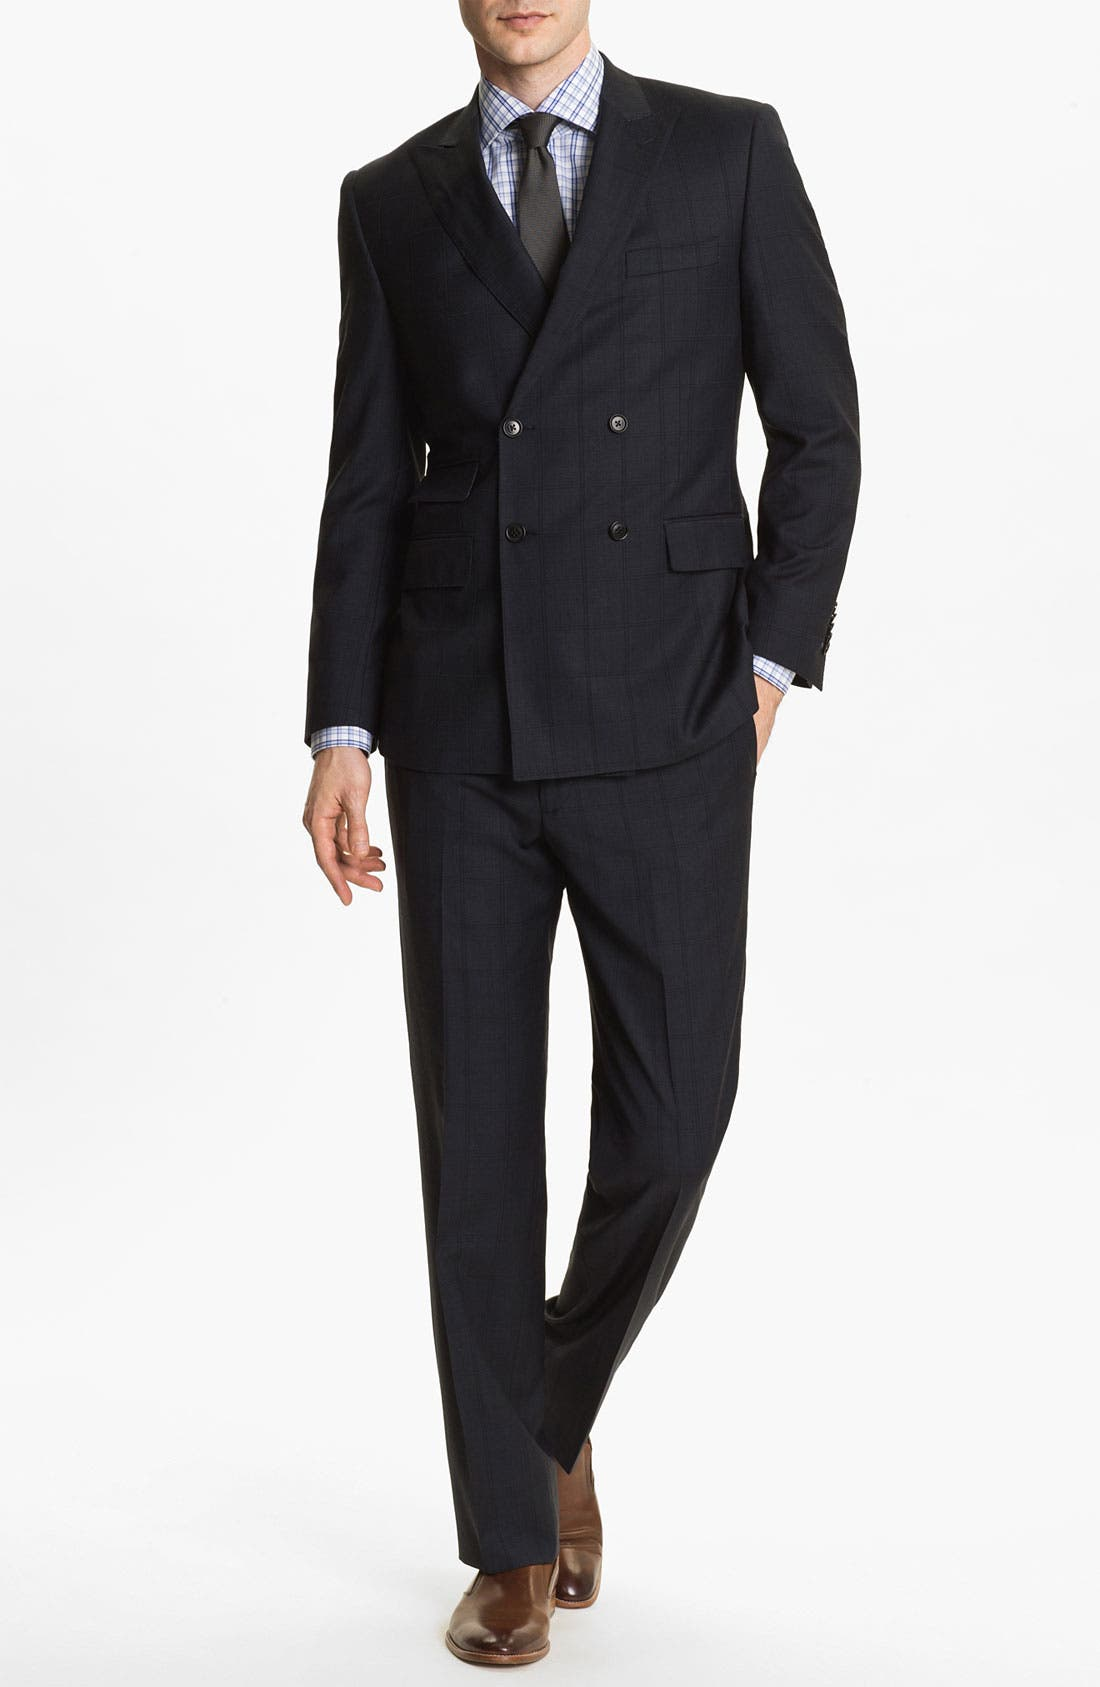 Main Image - English Laundry Trim Fit Double Breasted Suit (Online Only)